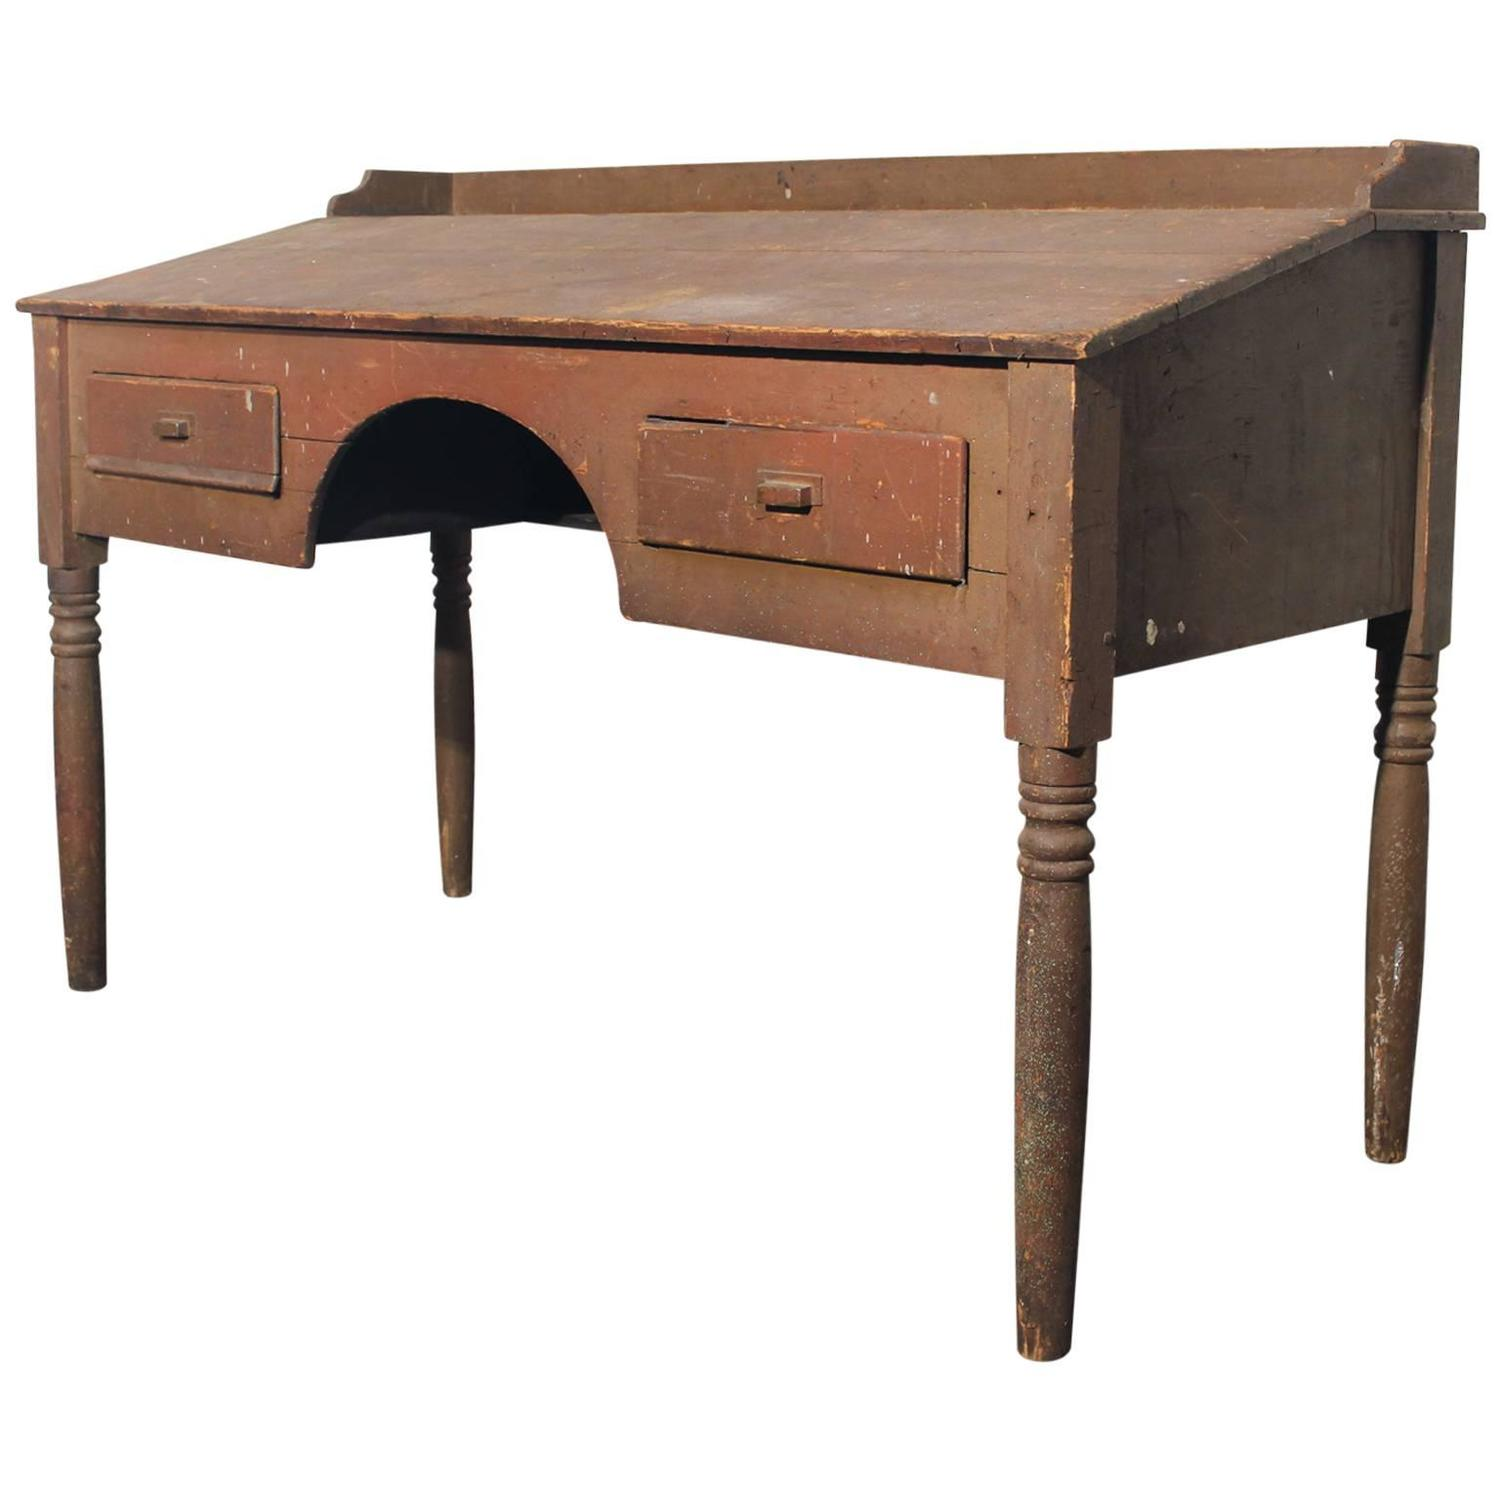 Antique primitive wood standing desk for sale at 1stdibs for Plantation desk plans